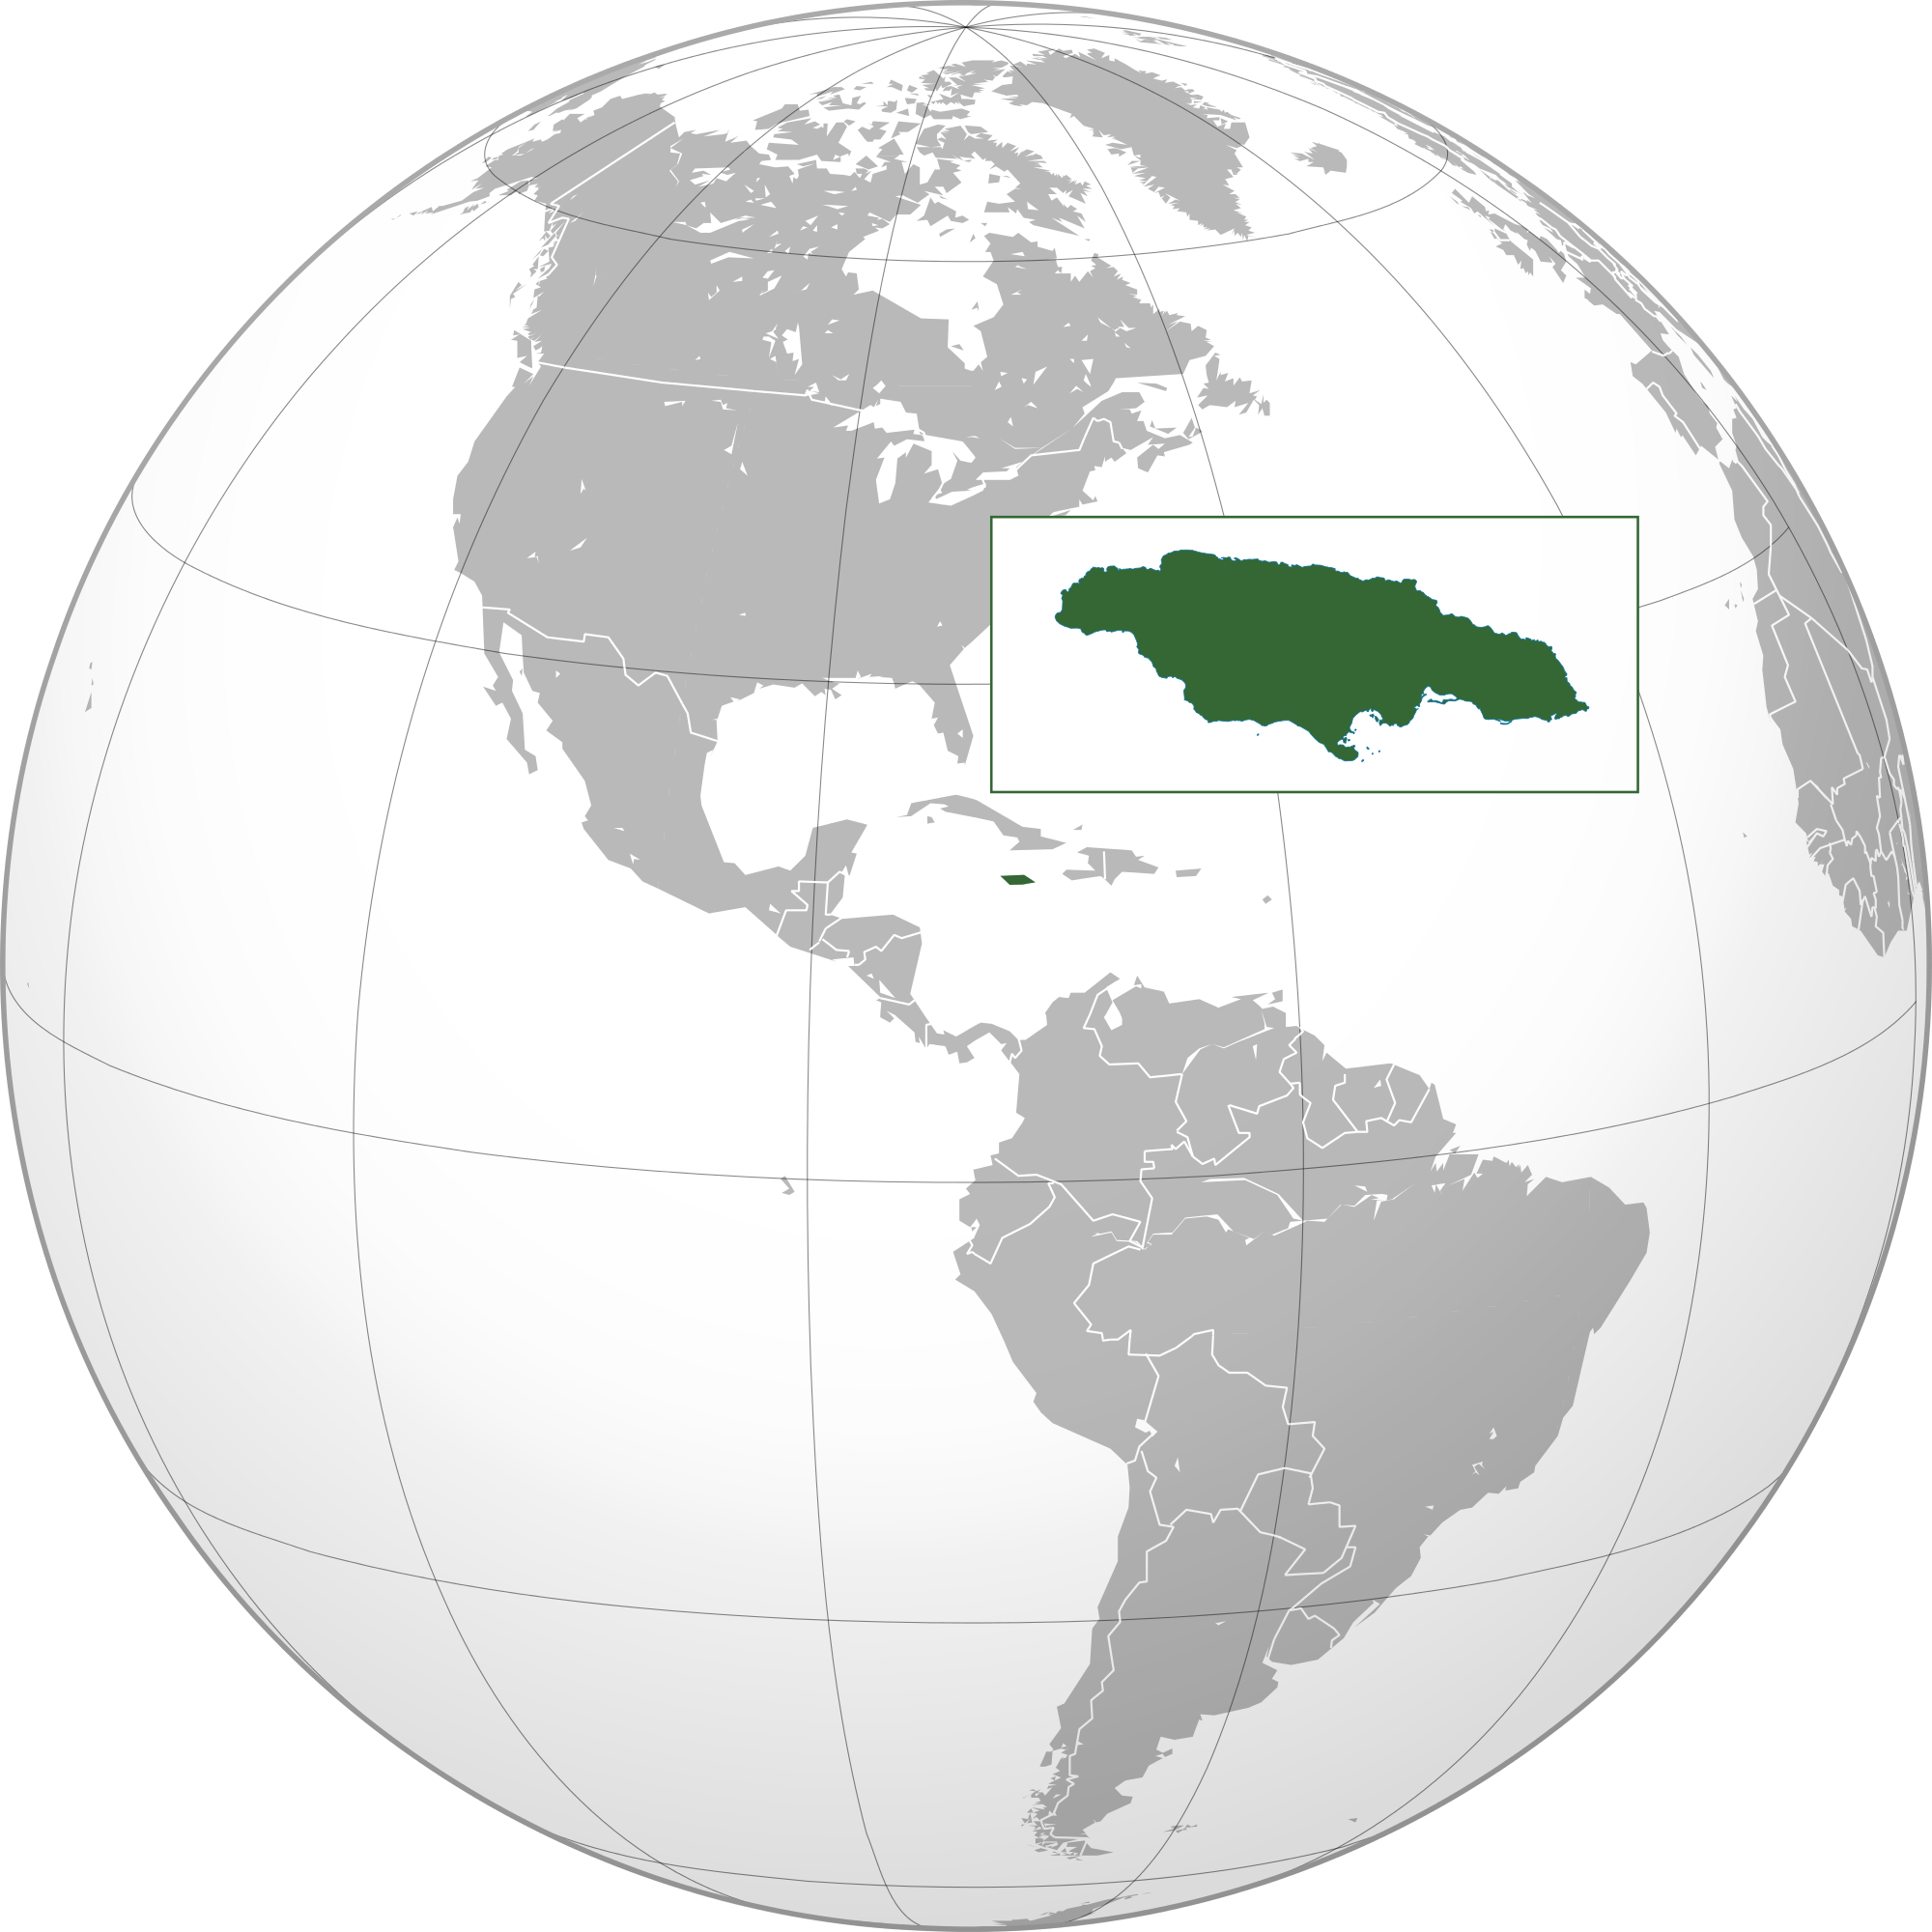 Location of the Jamaica in the World Map